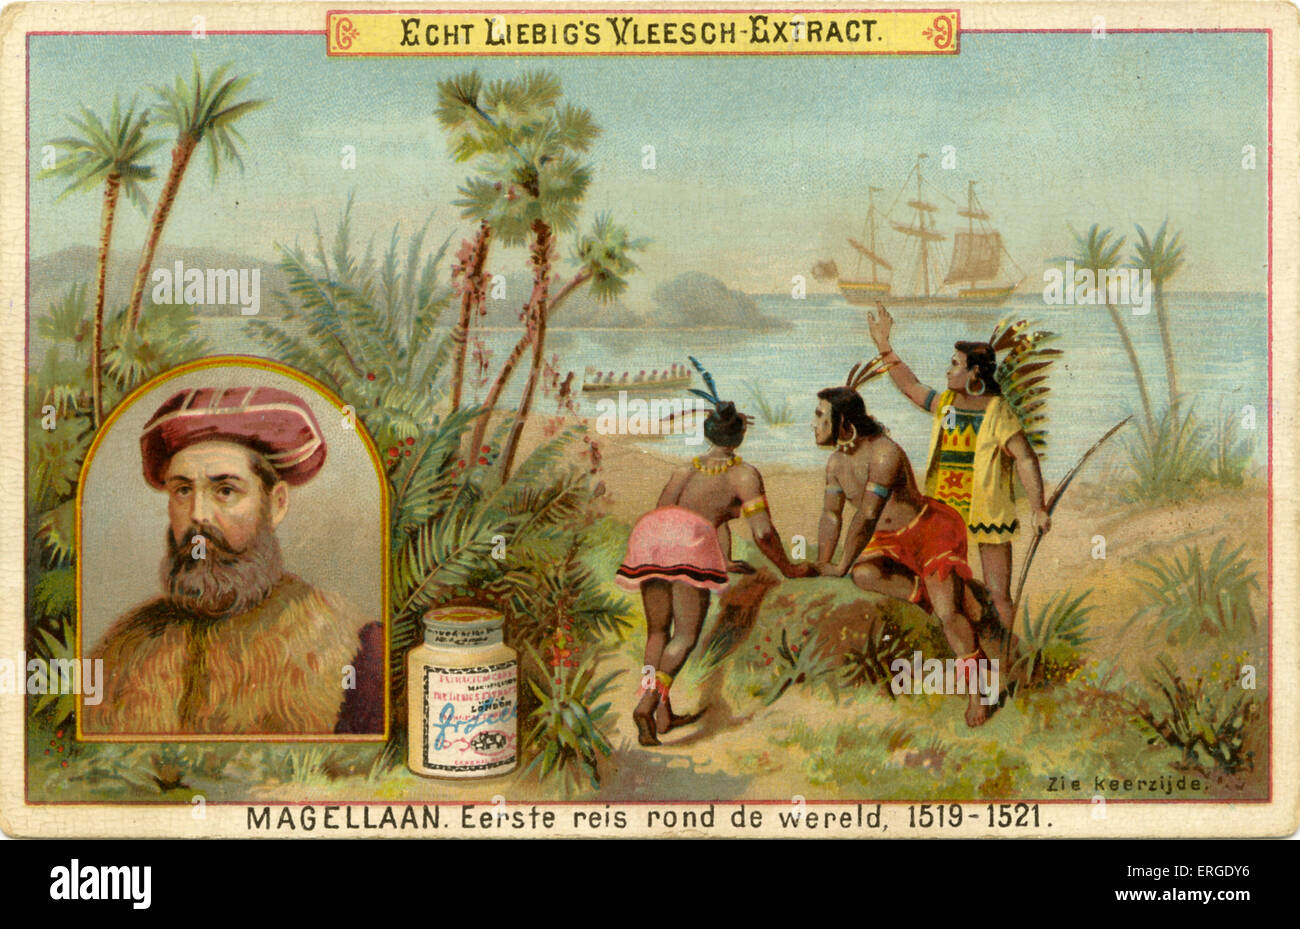 a history of the voyage of ferdinand magellan in 1519 Ferdinand magellan in 1519, a portuguese sailor set sail from seville, spain, in  an effort to sail around the globe this expedition was funded by spain.